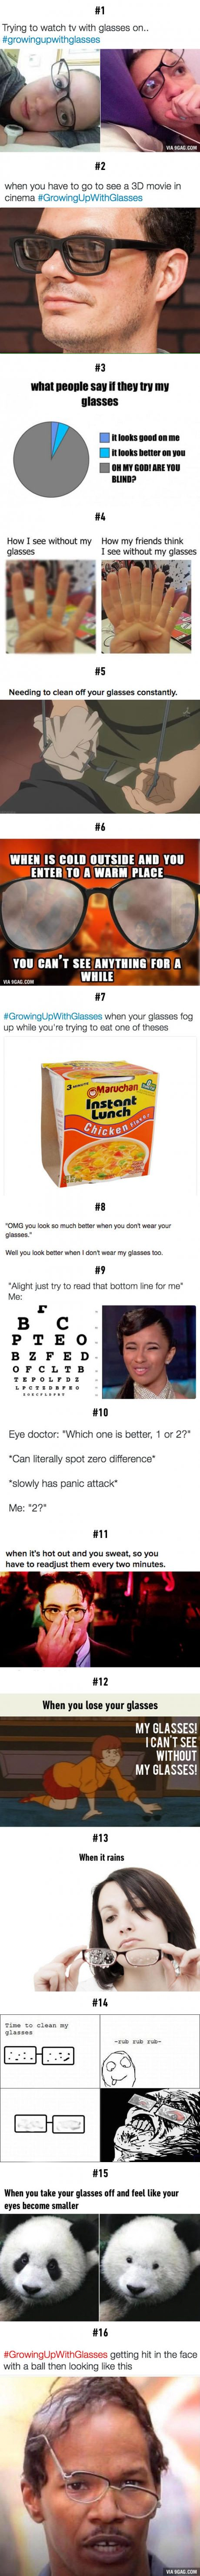 This is my life. I relate especially to the last one since I got hit in the face during gym class with a dodgeball and my glasses broke :( now I have glue holding them together XD